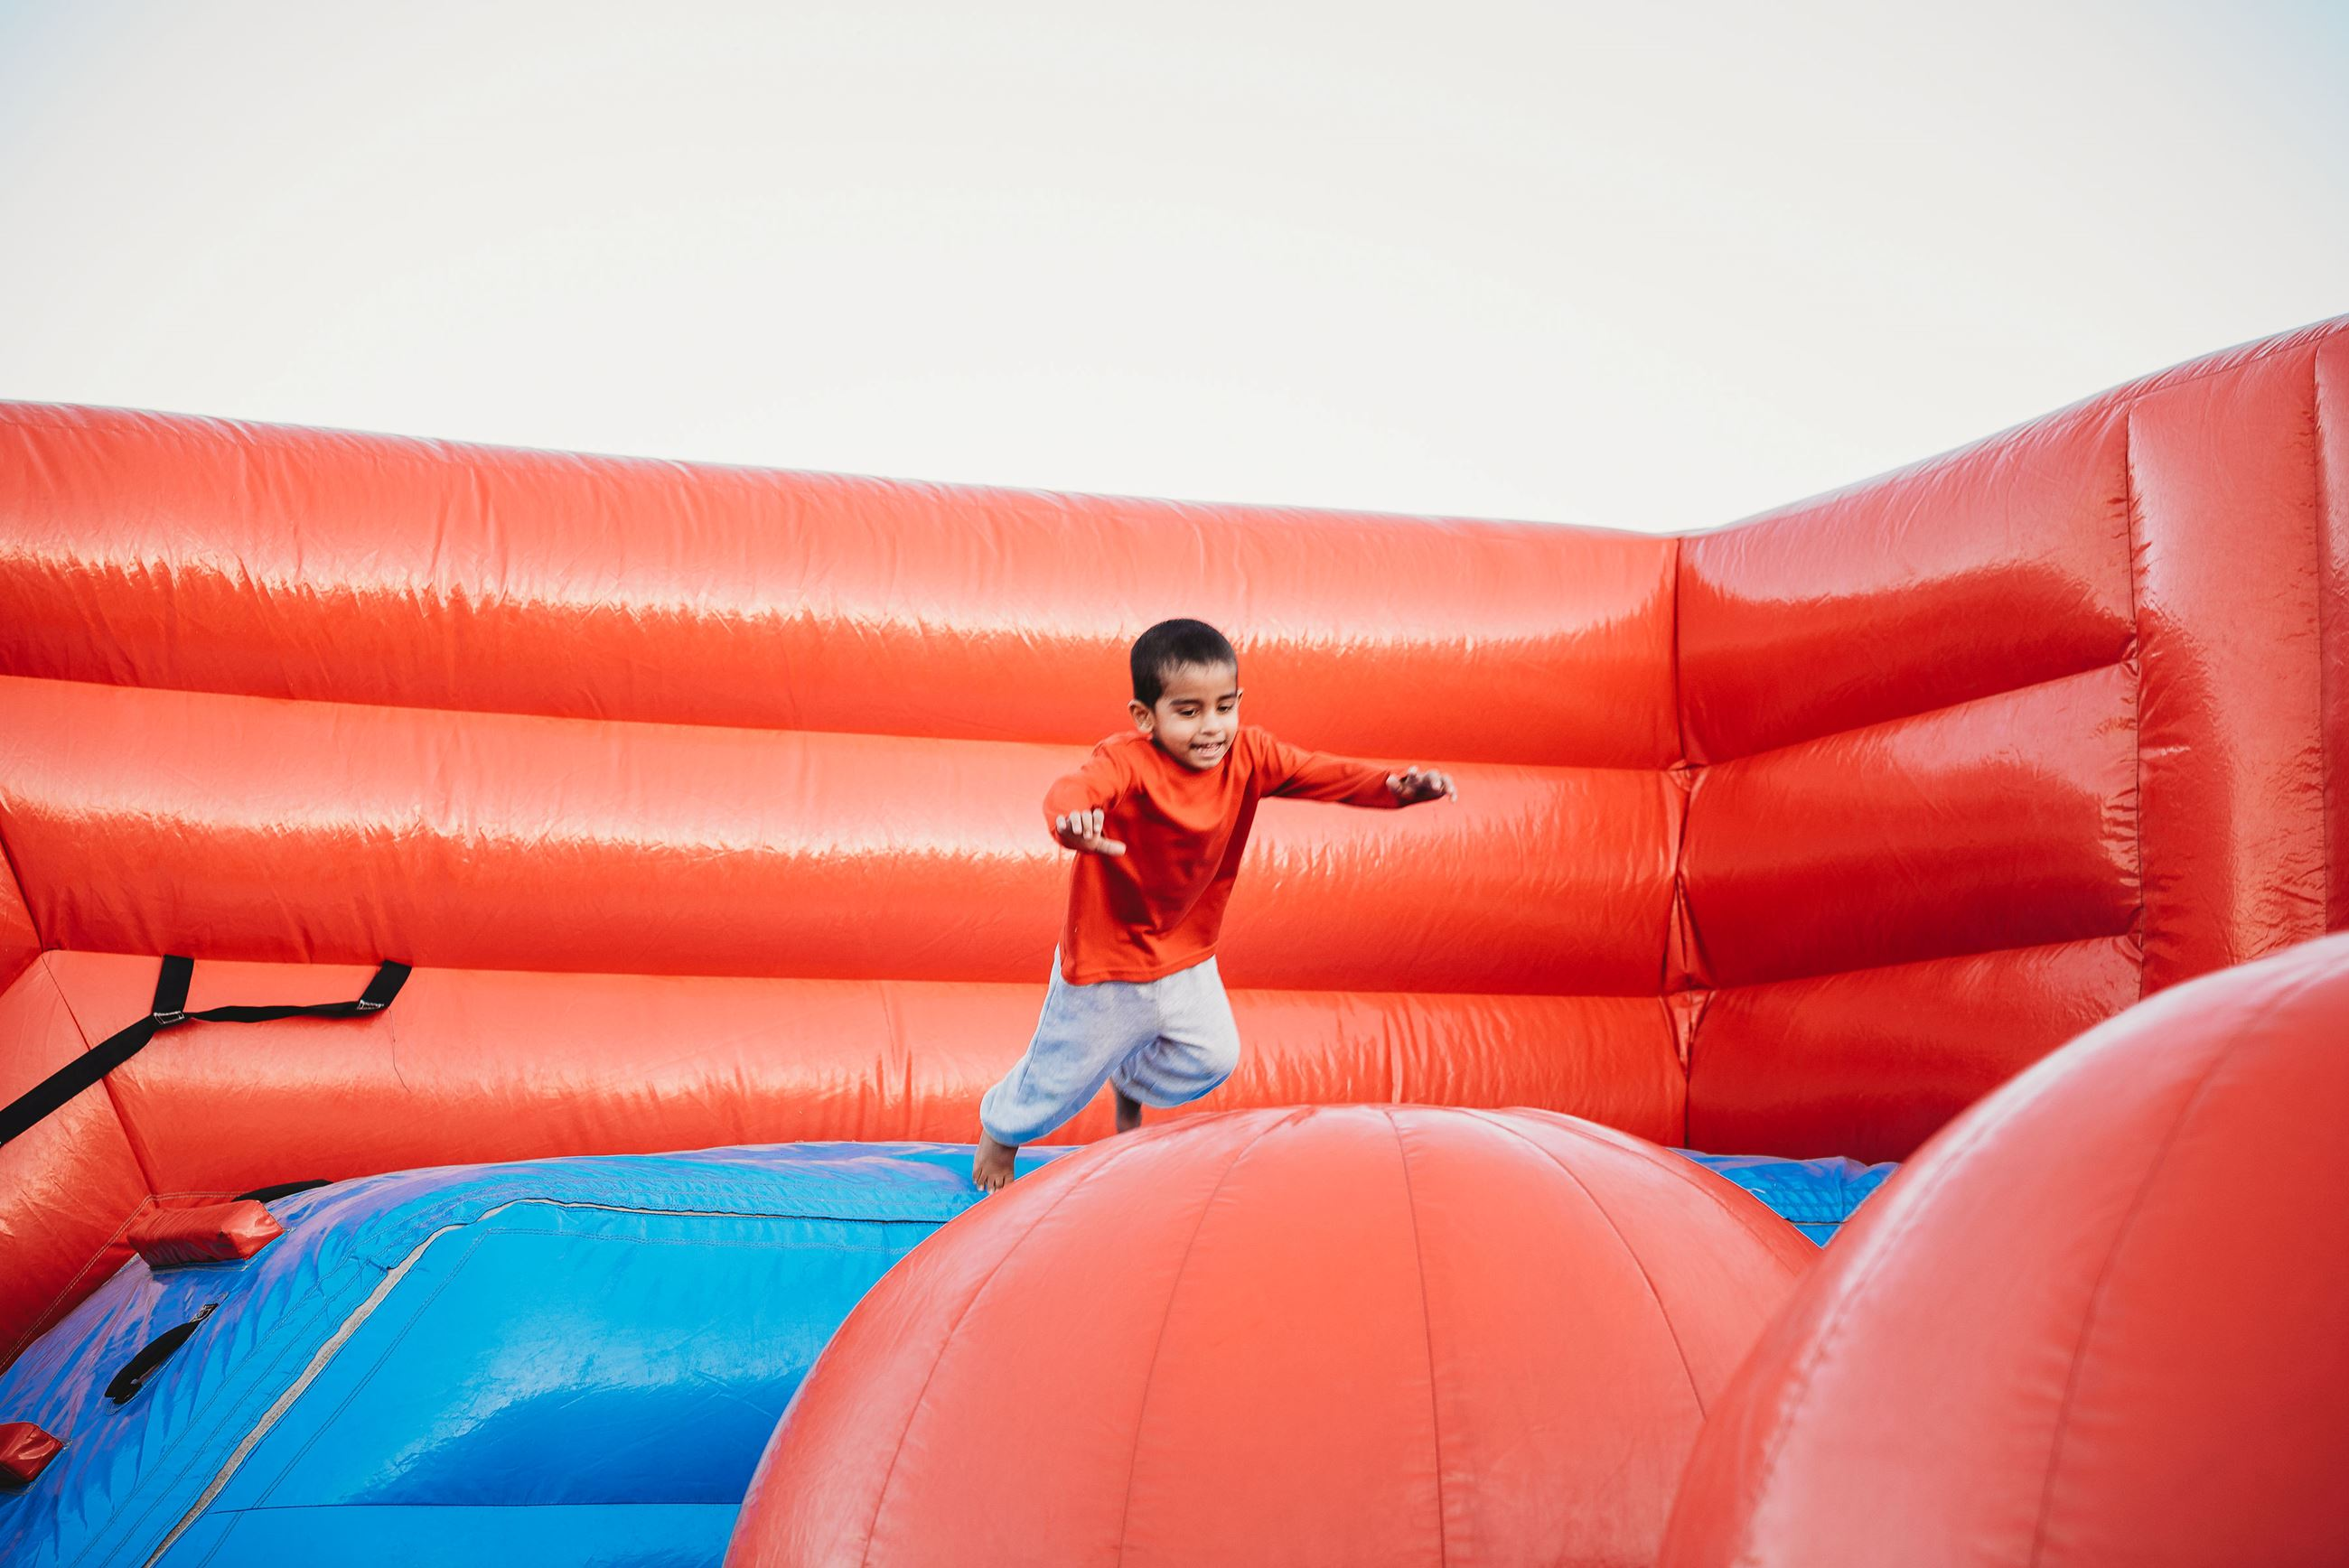 Young Boy in a Red Shirt Participating in a Wipeout Obstacle Course